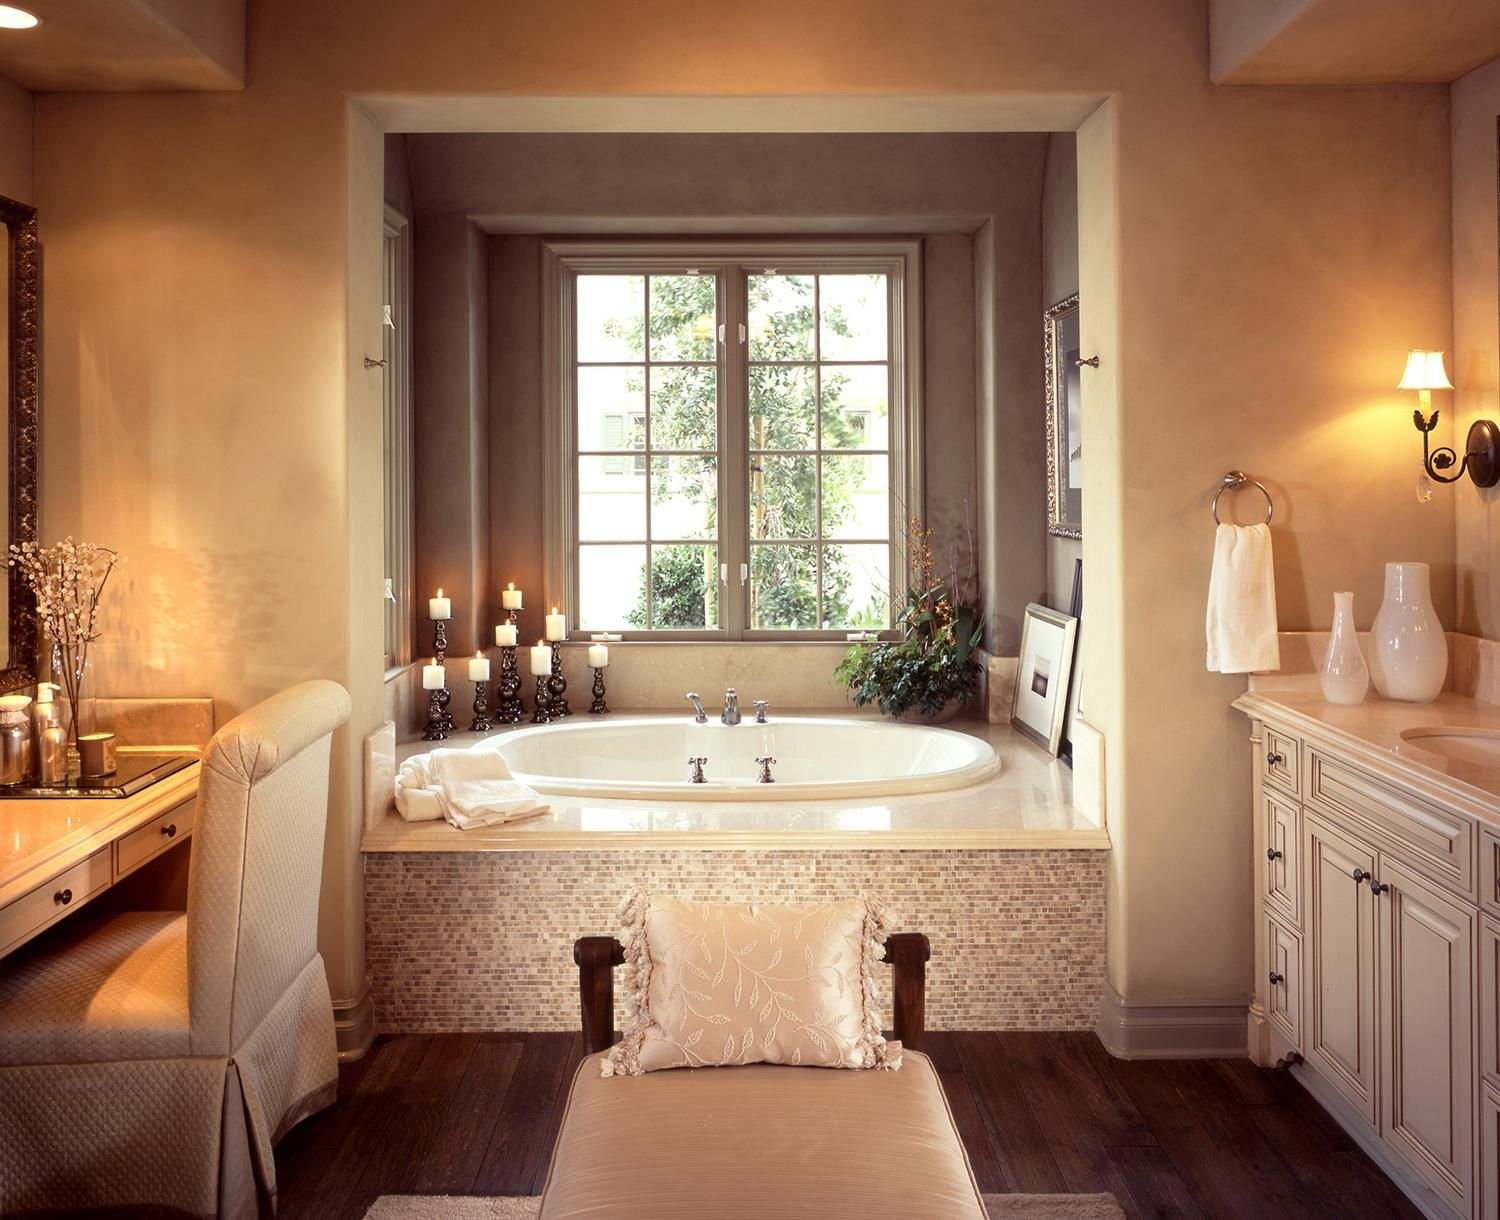 mesmerizing fancy rooms relaxing bathroom | This gorgeous bathroom is the perfect setting for a nice ...